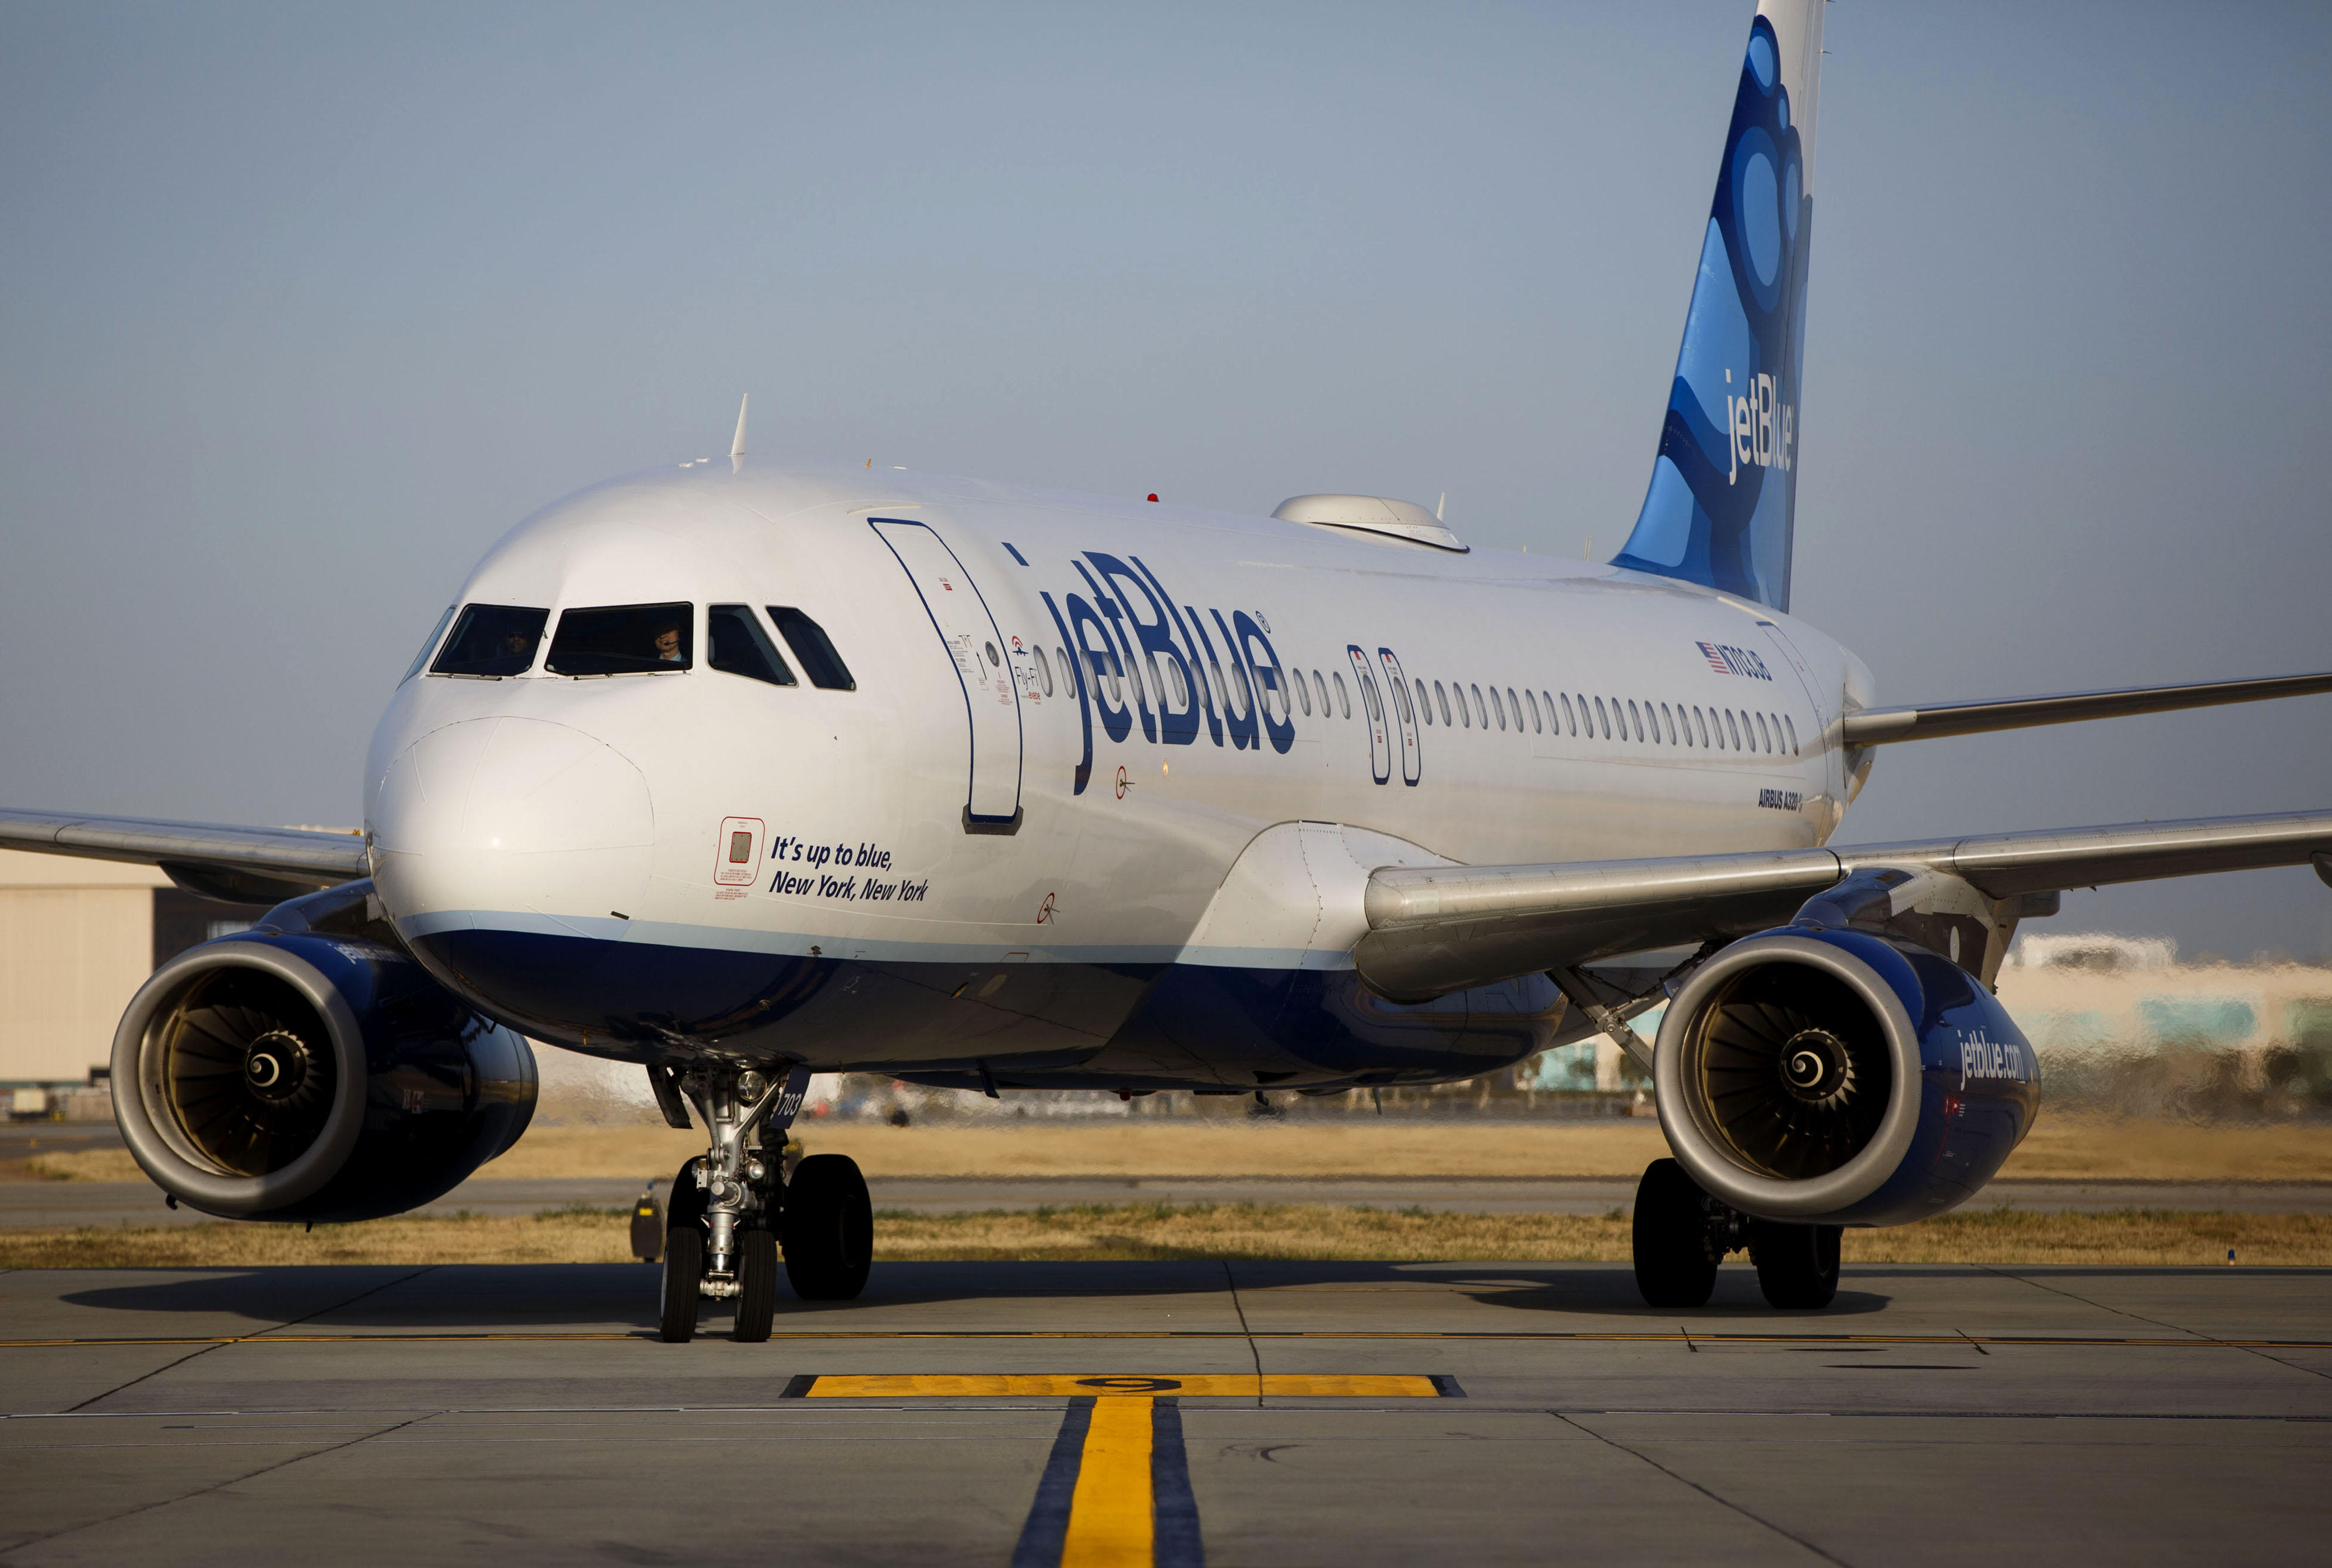 Operations Inside The JetBlue Airways Corp. Terminal Ahead Of Earnings Figures